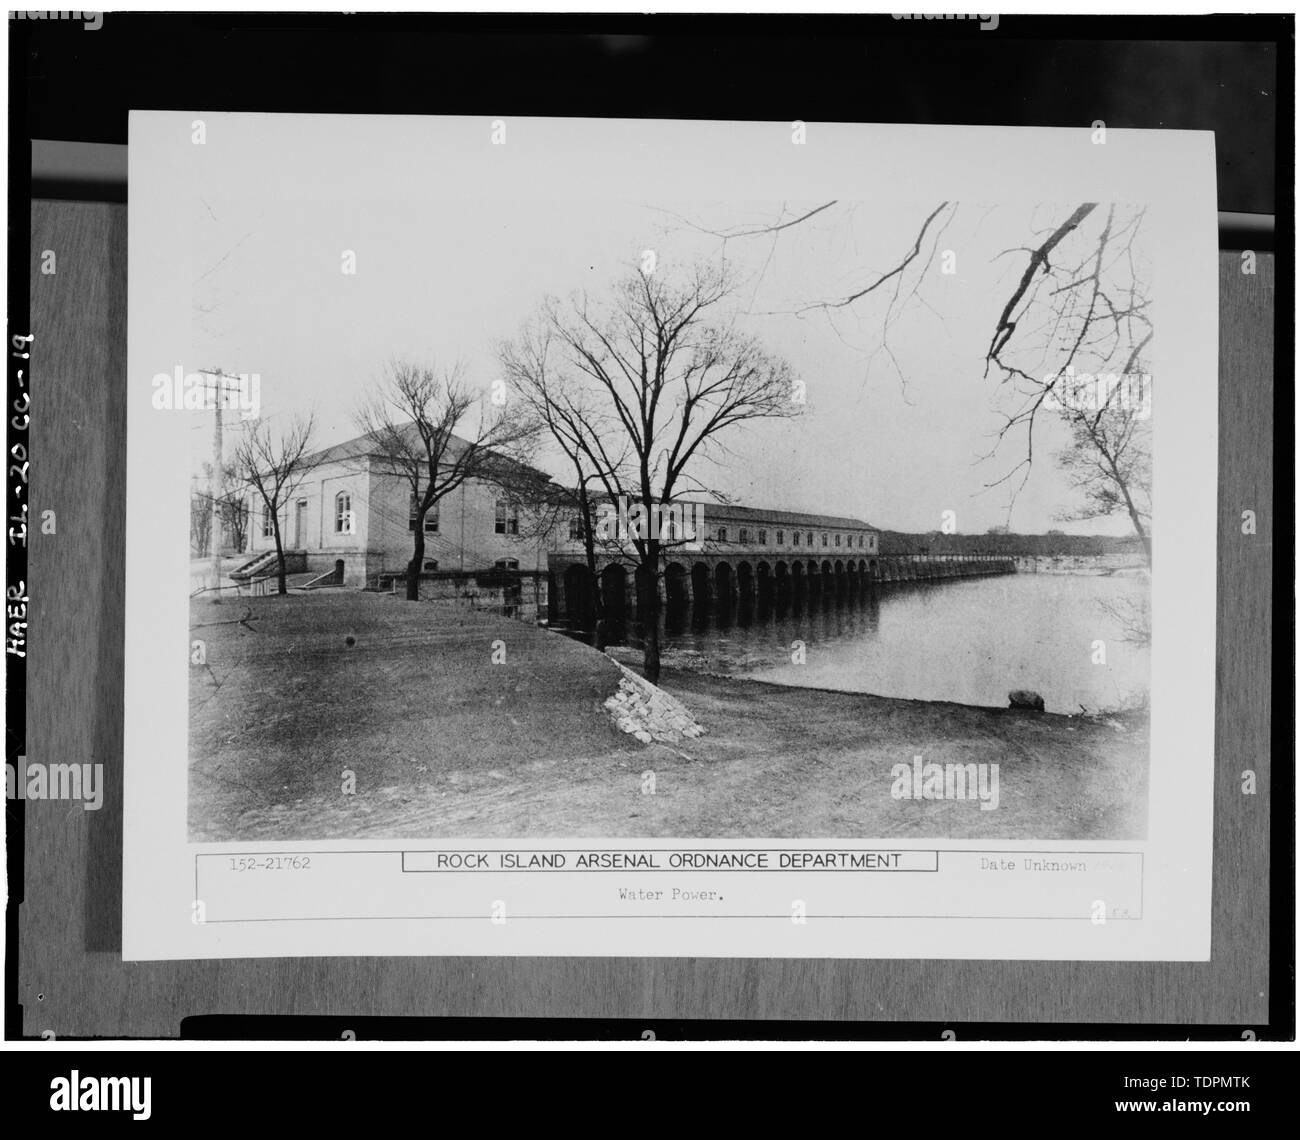 Photograph of a photograph in possession of Rock Island Arsenal Historical Office. WEST AND SOUTH ELEVATIONS BEFORE 1903 ADDITION TO EAST ELEVATION. UNDATED. - Rock Island Arsenal, Building No. 160, Sylvan Drive, Rock Island, Rock Island County, IL; Central Engineering Company of Davenport - Stock Image